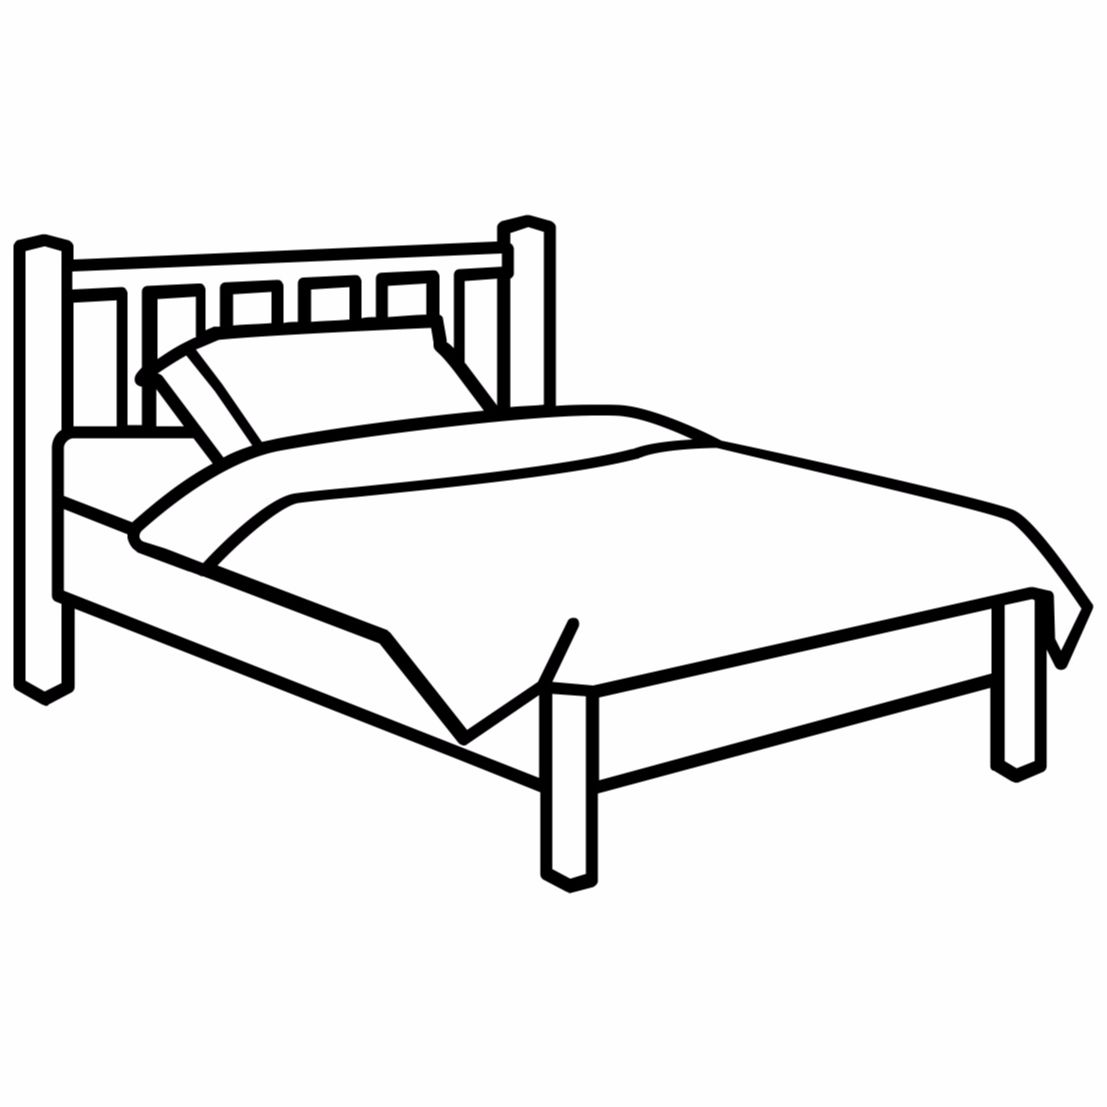 bed coloring pages bed for a girl coloring page free printable coloring pages coloring pages bed